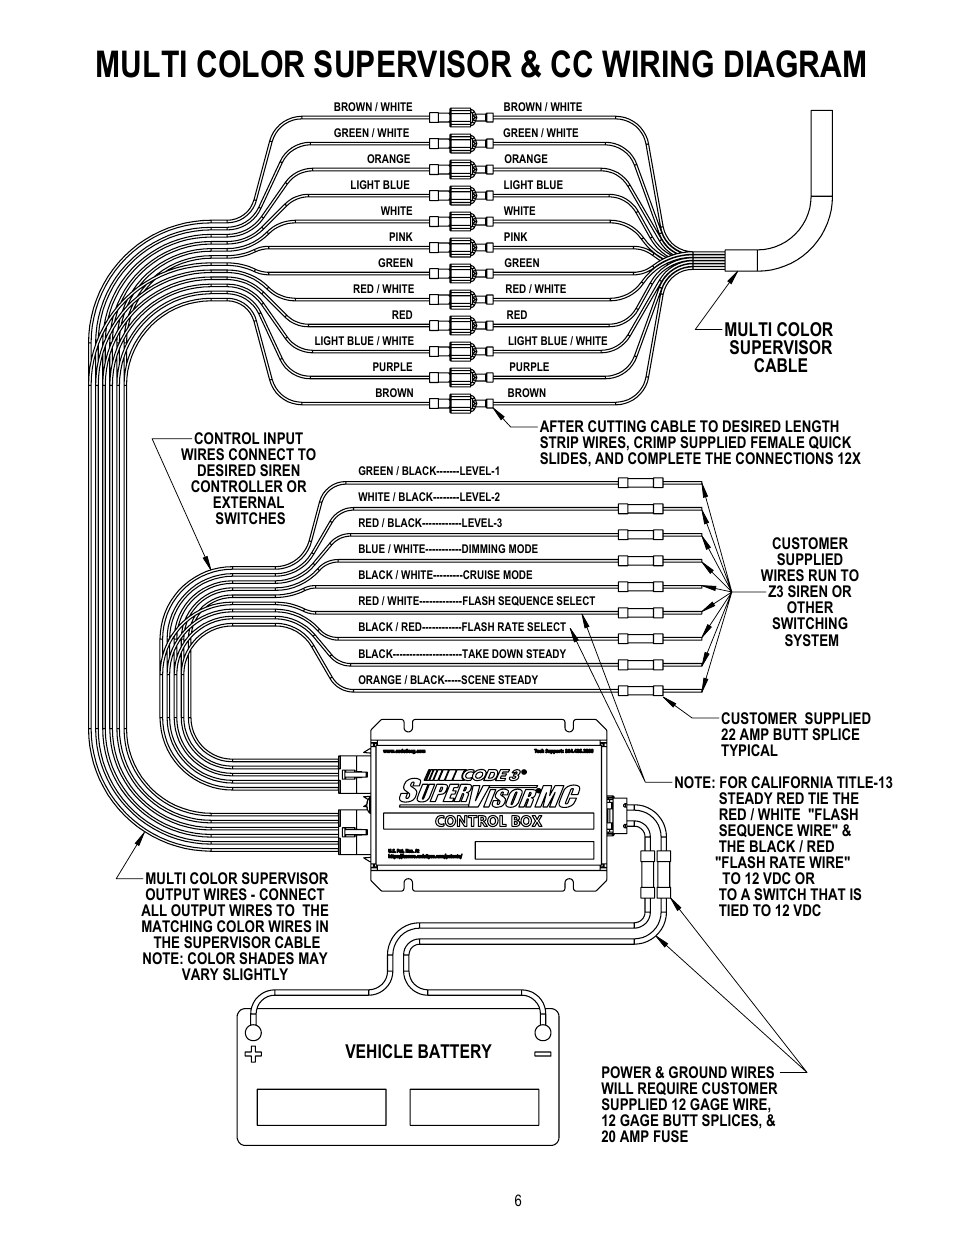 Awesome Valet Remote Start Wiring Diagram Composition - Wiring ...